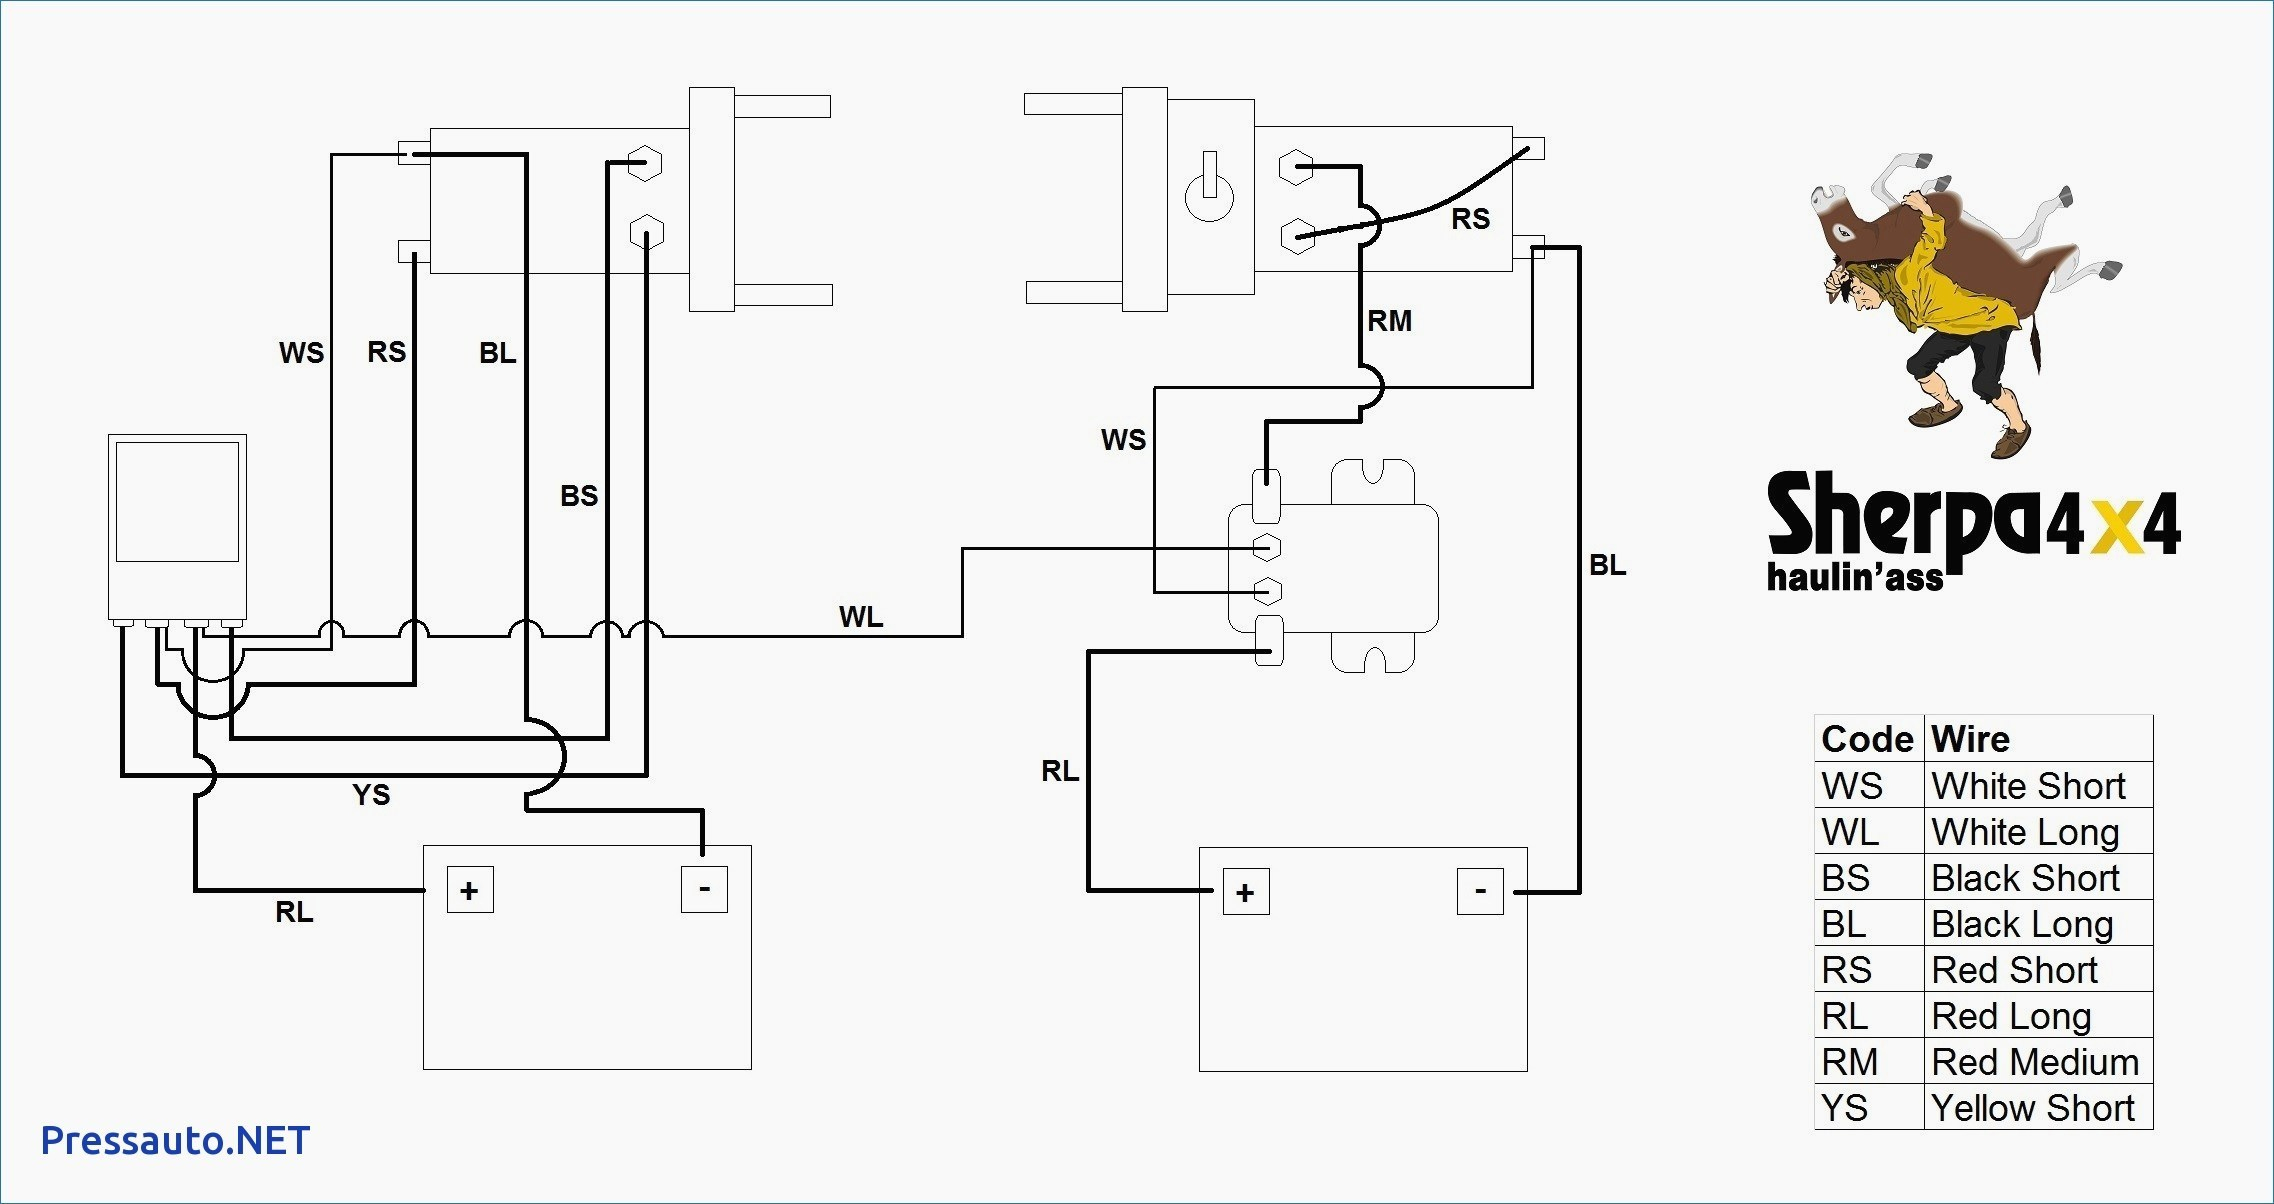 Ramsey Winch Solenoid Wiring Diagram New 12V | Wiring Diagram - Ramsey Winch Wiring Diagram